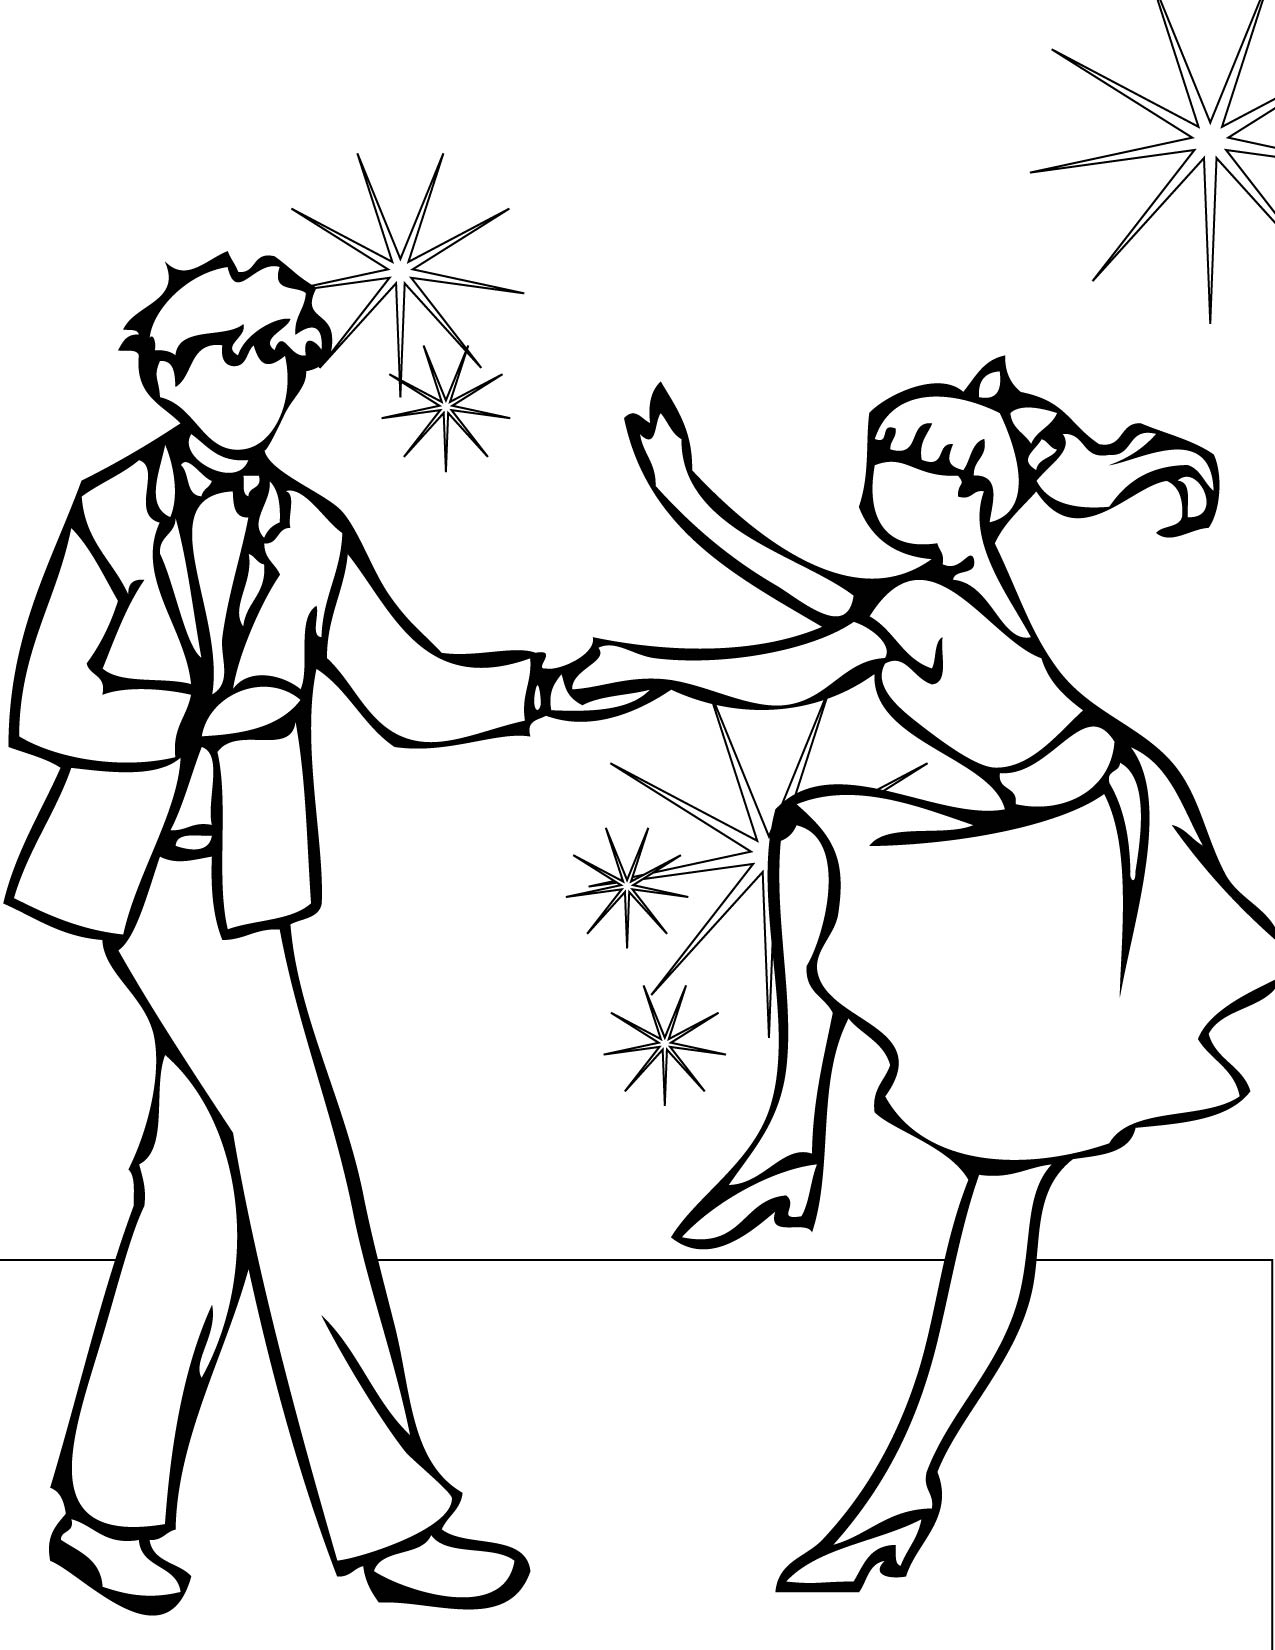 1275x1650 Printable Best Dancers To Color Images On Free